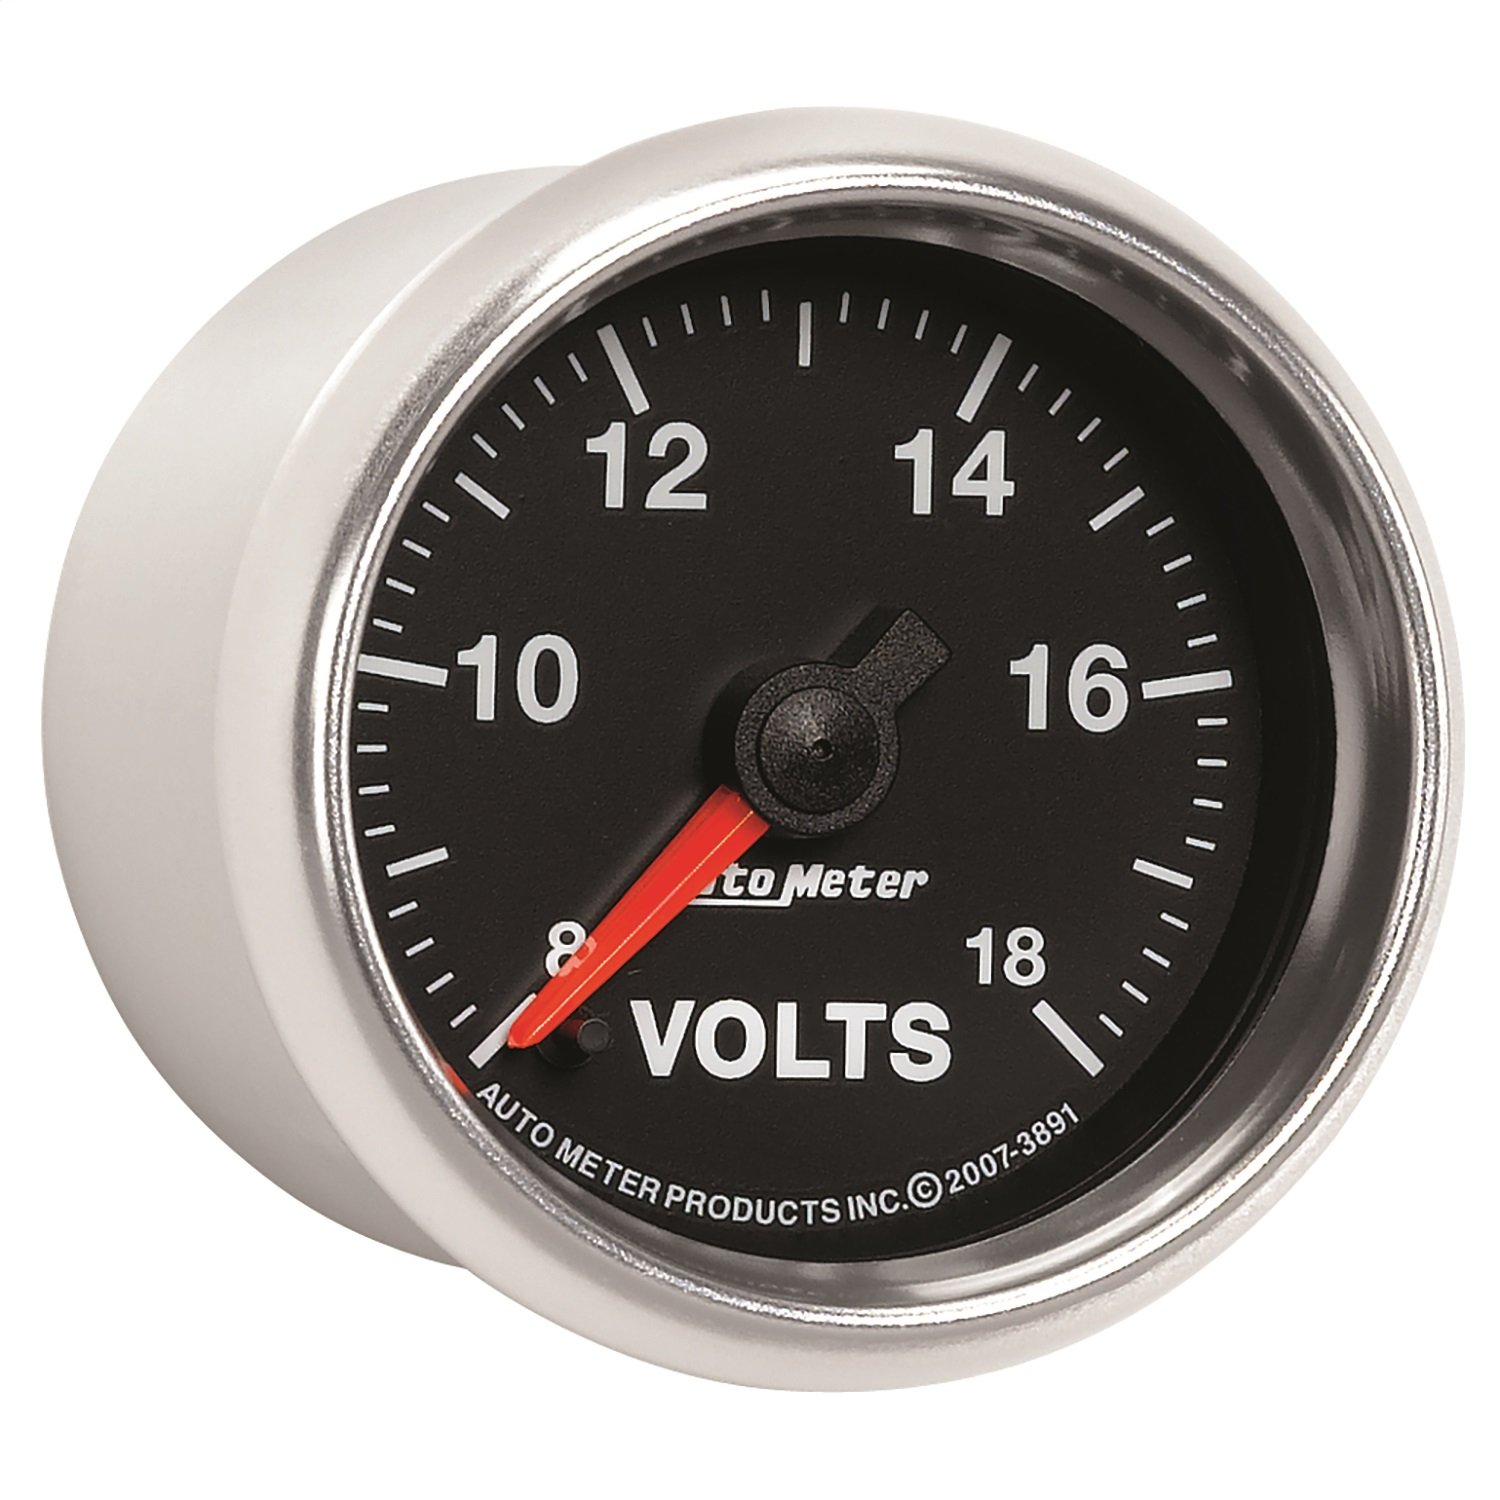 Auto Meter 3891 GS Electric Voltmeter Gauge